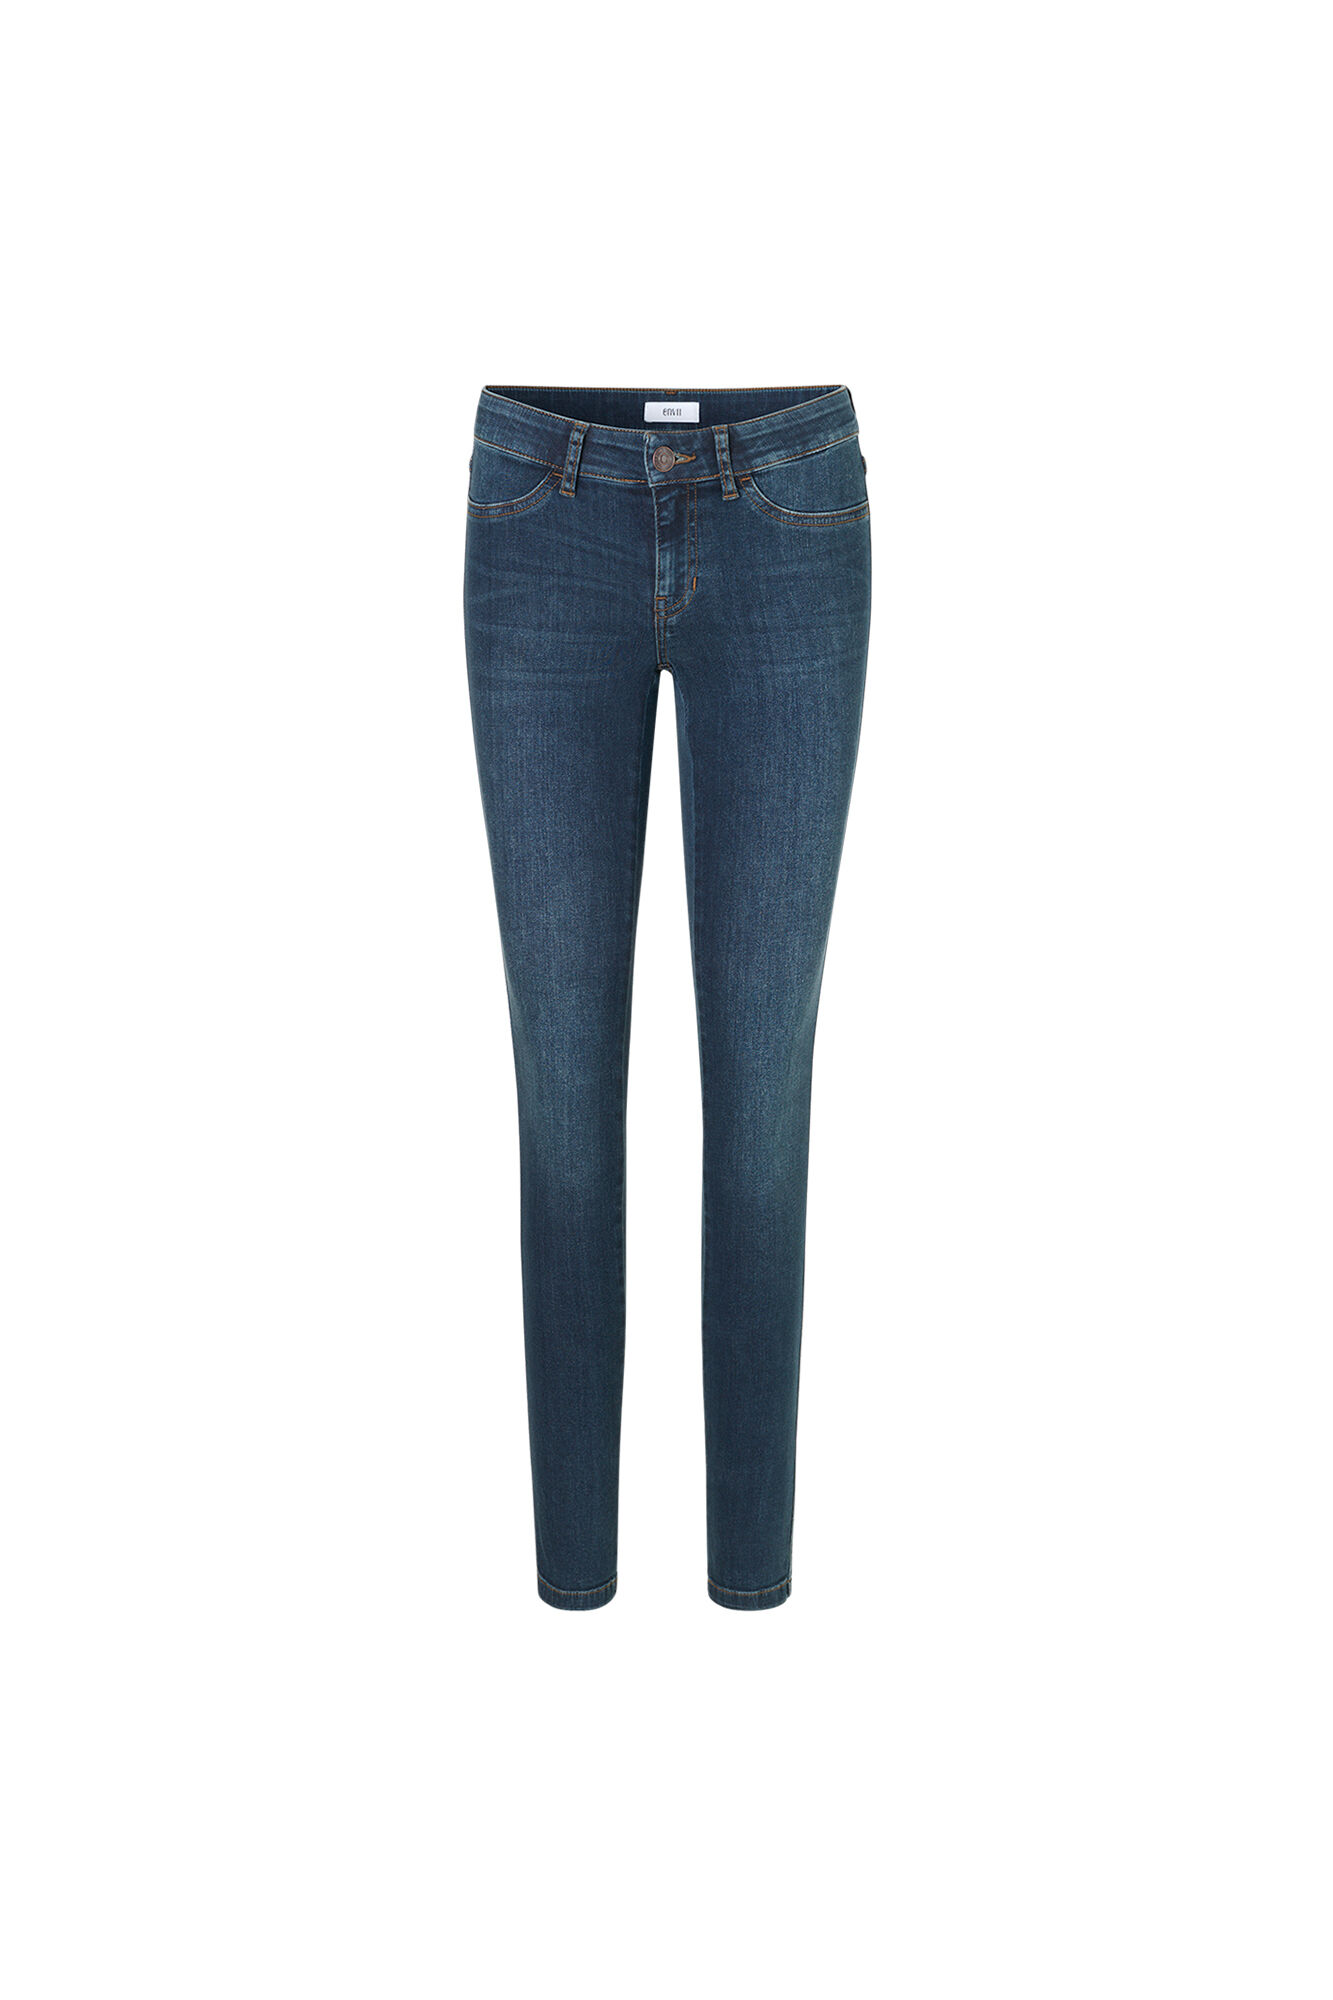 ENBLAIR JEANS WORN BLUE 6403